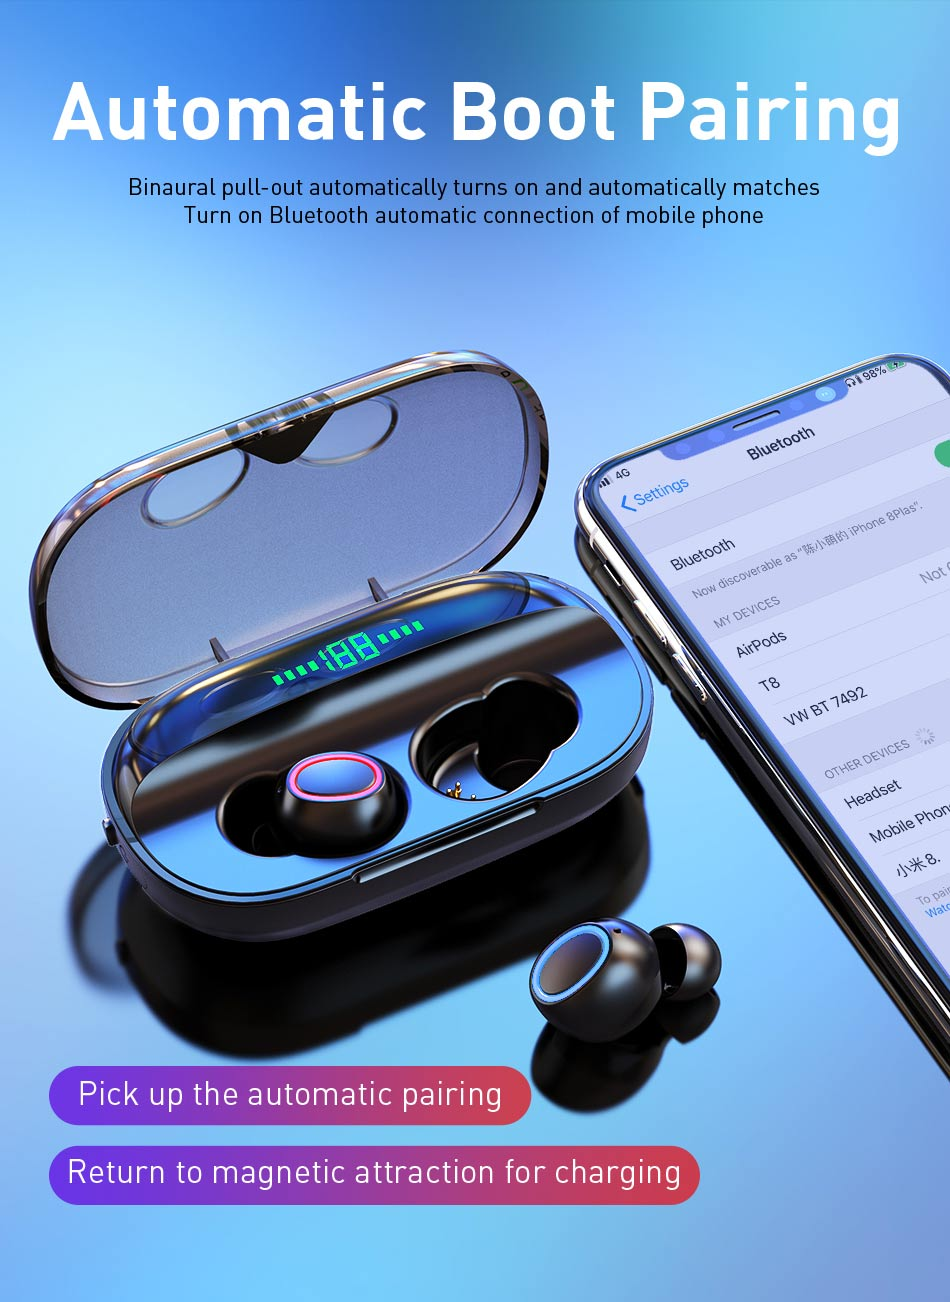 X1 TWS 5.0 Bluetooth Headphone 3D Stereo Wireless Earphone Dual Mic LED Digital Power Bank Support iOS/Android Phones 2000 mAh